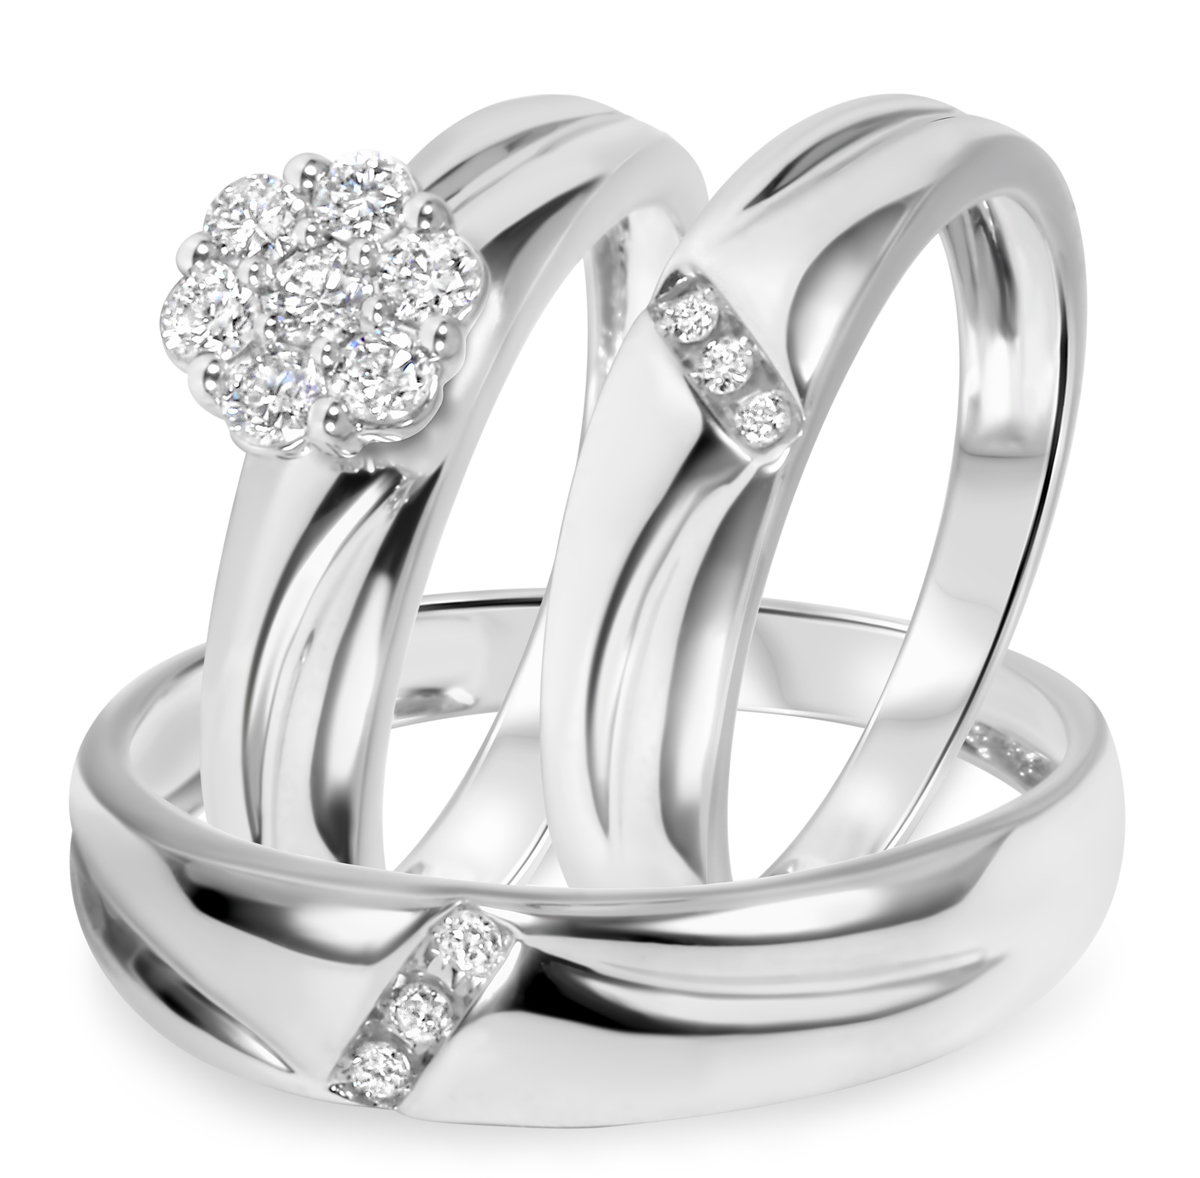 tw diamond trio matching wedding ring set 14k white gold my trio rings bt539w14k - Wedding Ring Trio Sets